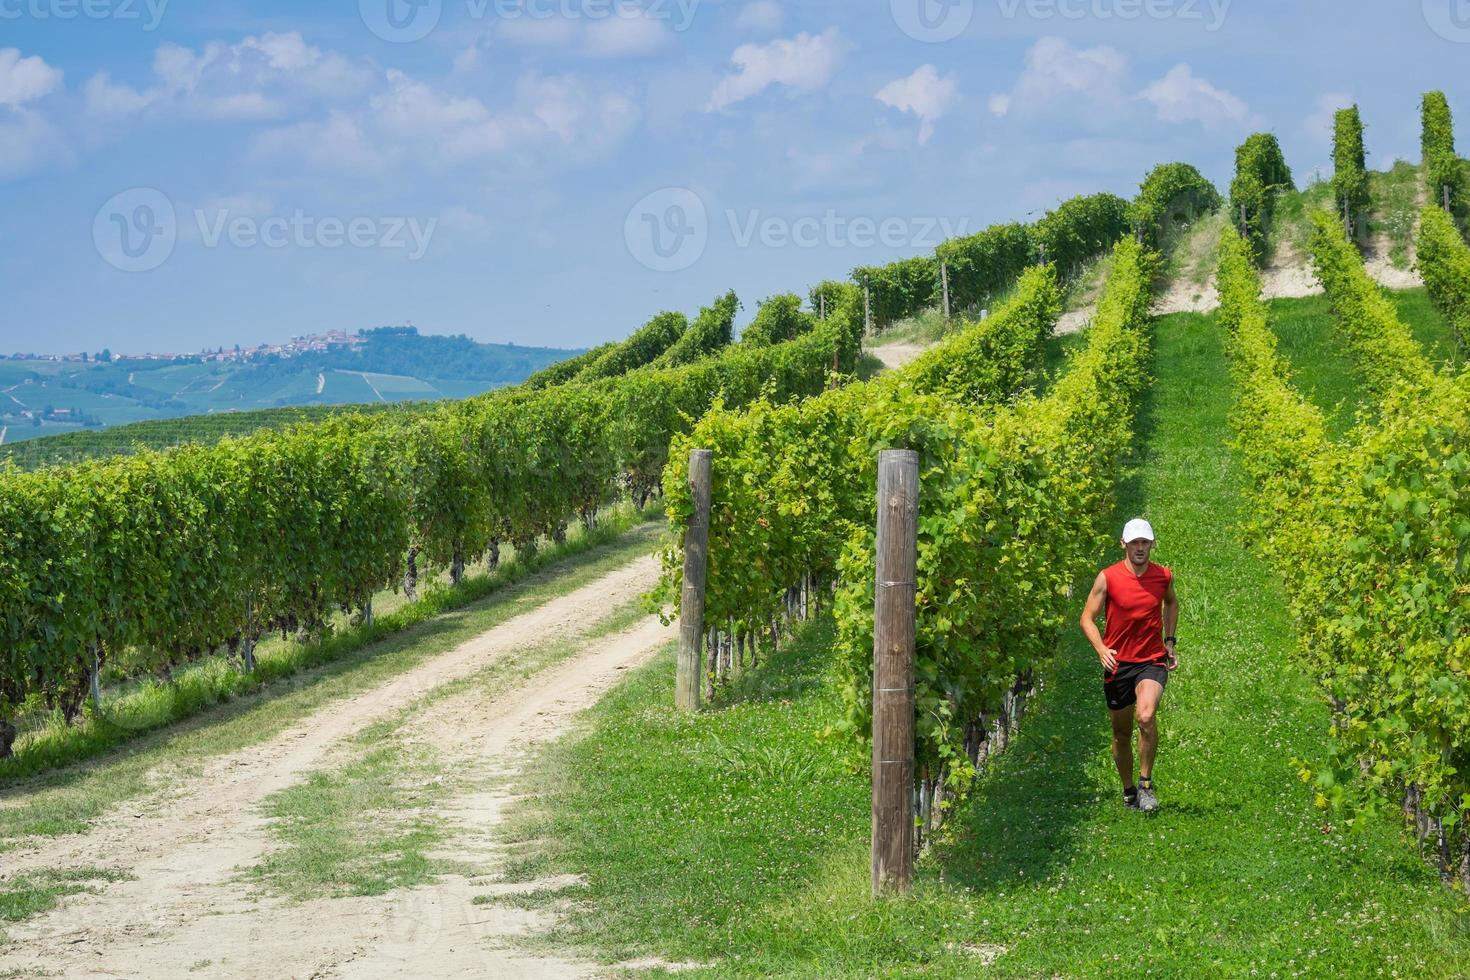 Trail running in the vineyards photo